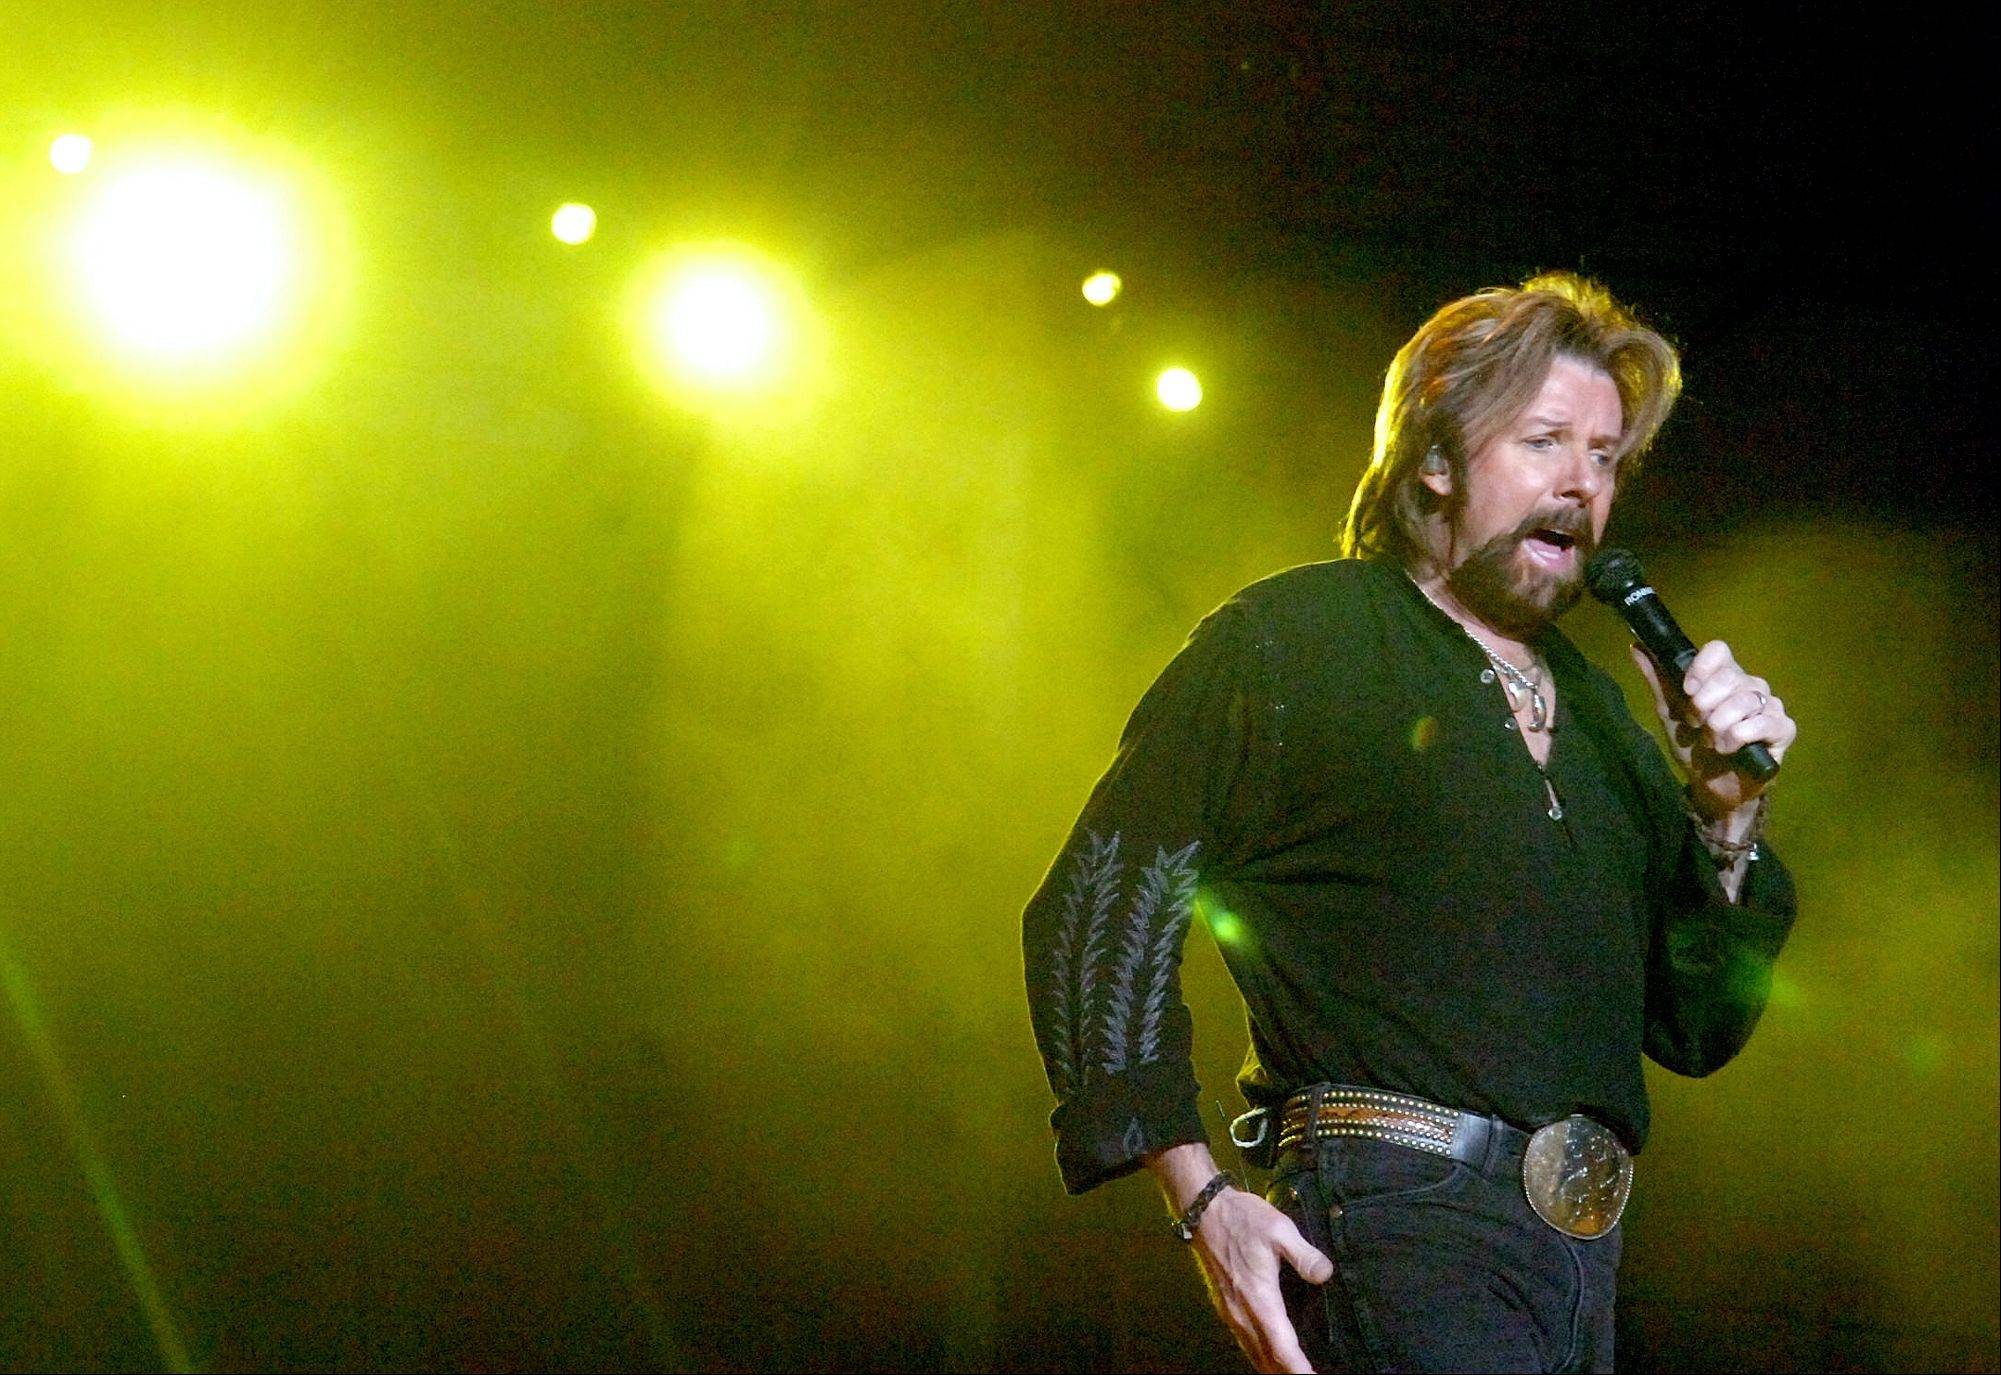 Country music star Ronnie Dunn will be the featured performer at Saturday's Rockin' for the Troops concert at Cantigny Park in Wheaton.